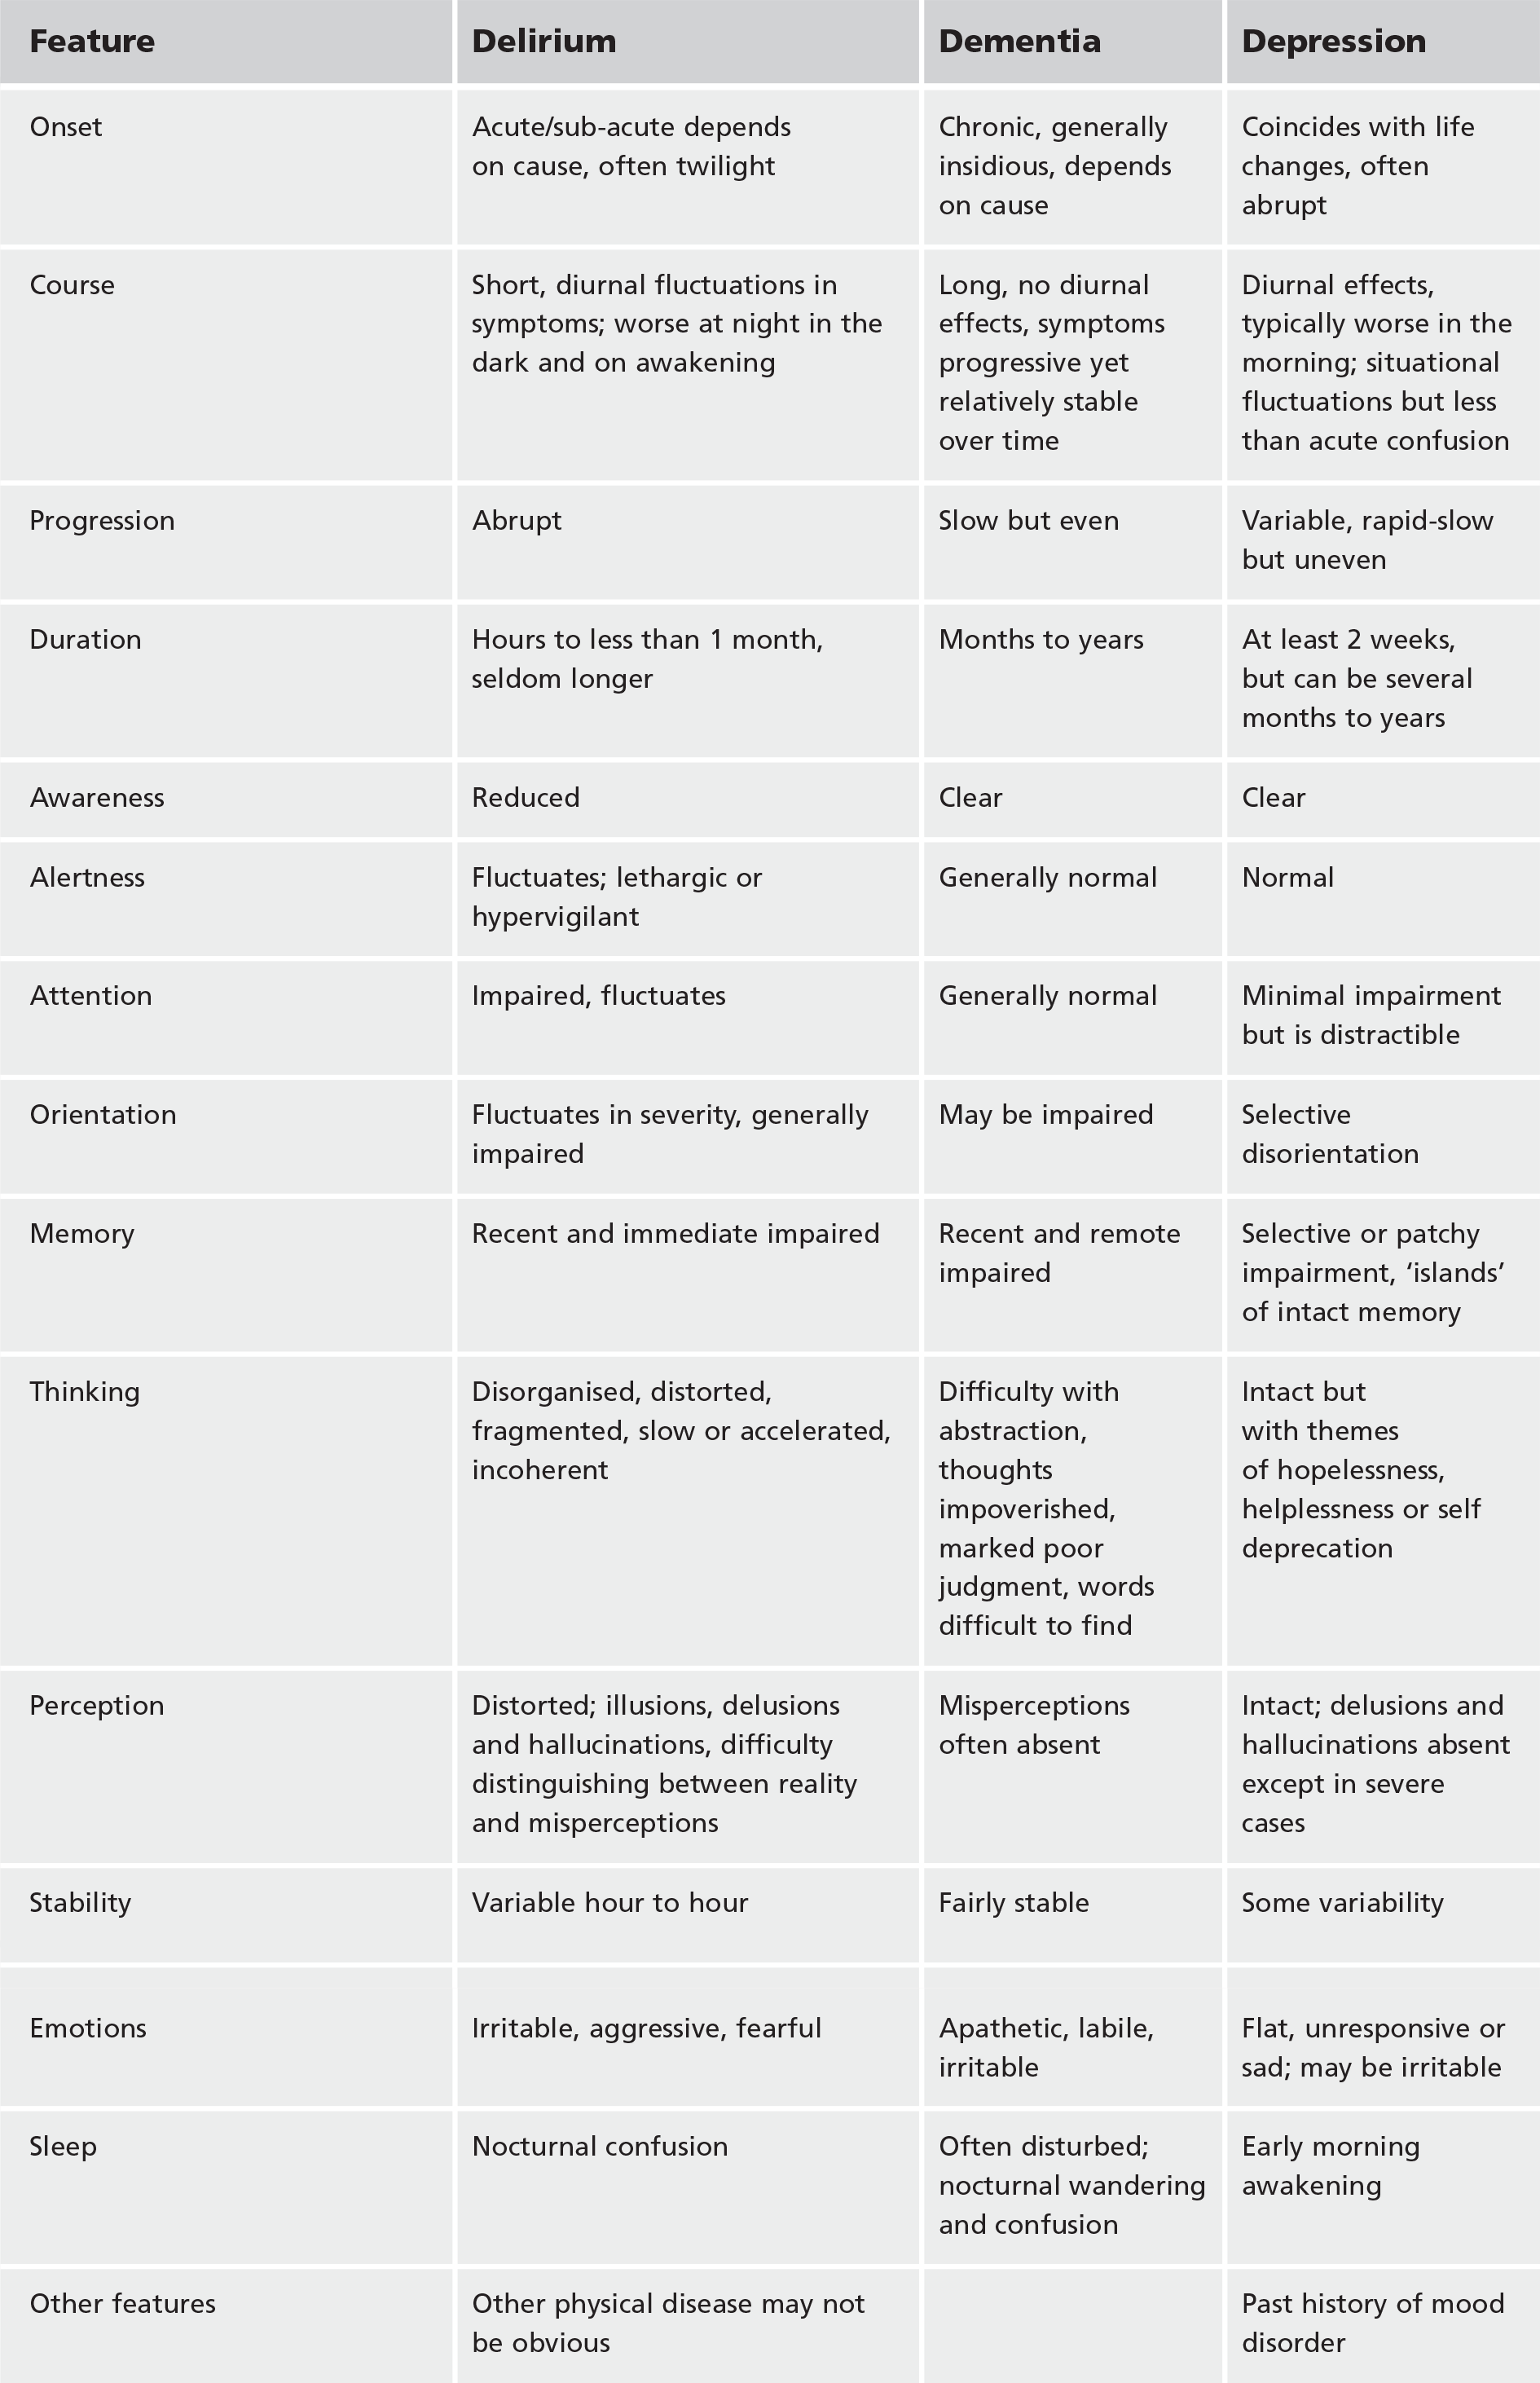 Table 1. Comparison of the clinical features of delirium, dementia and depression